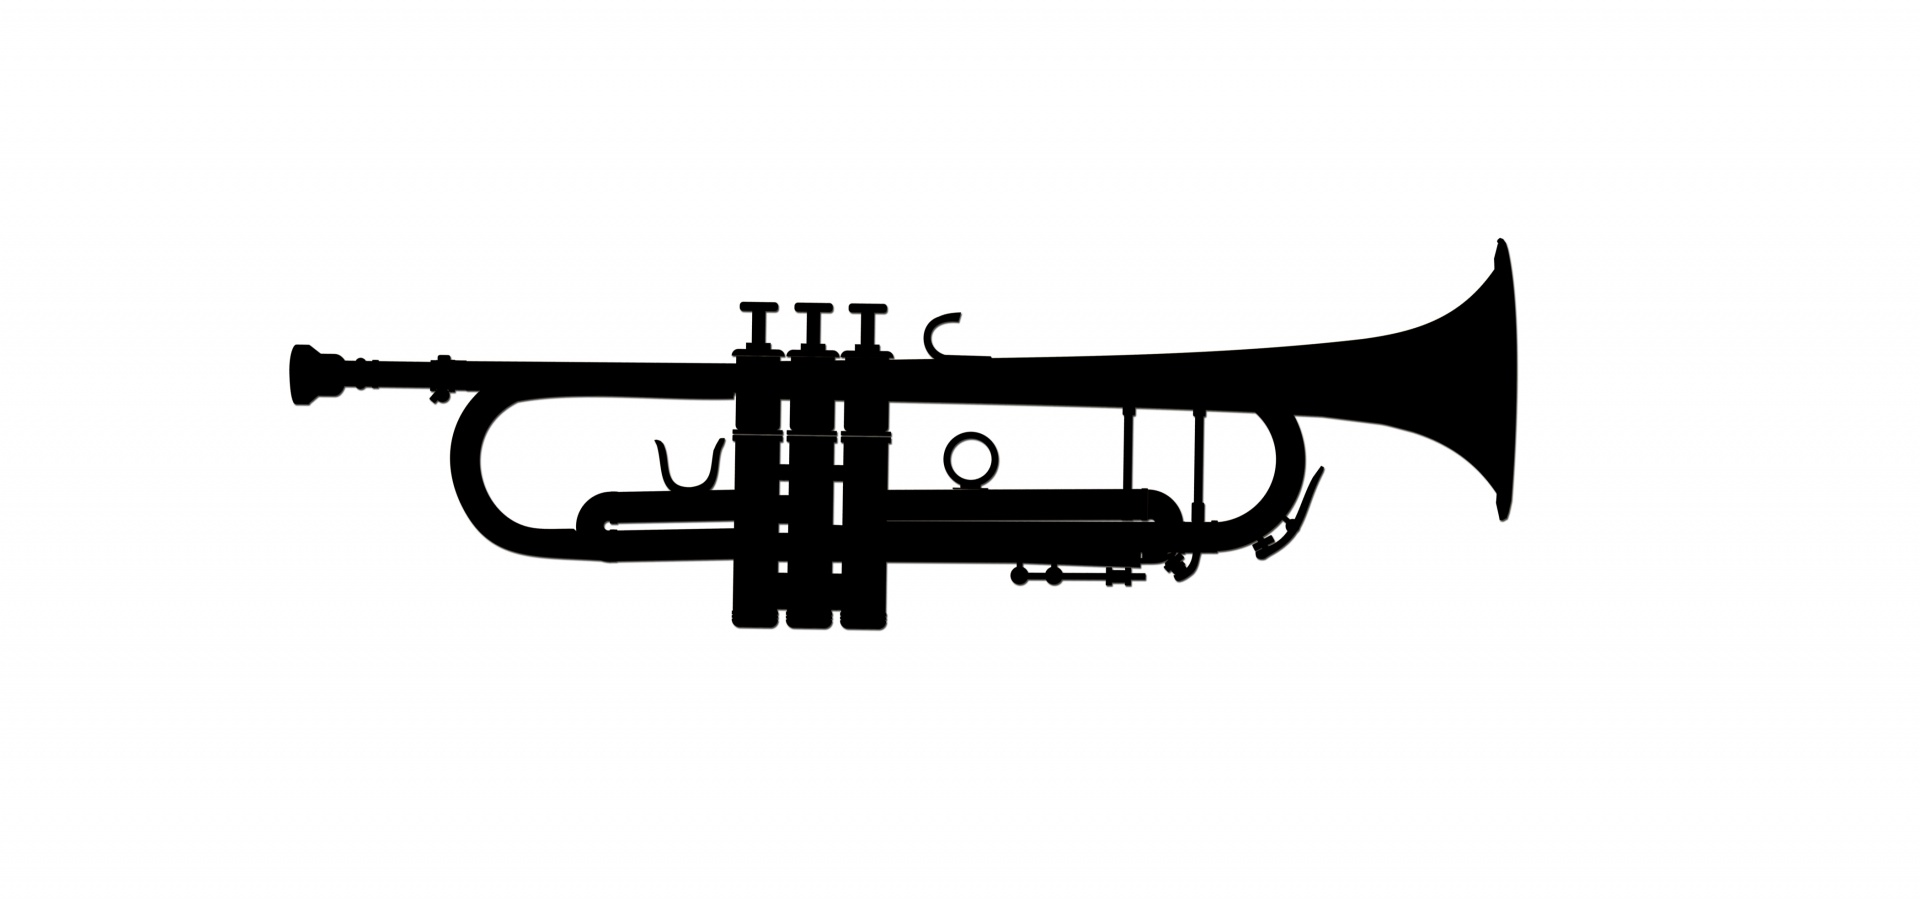 trumpet clipart, trumpet musical instrument clipart photo #31899